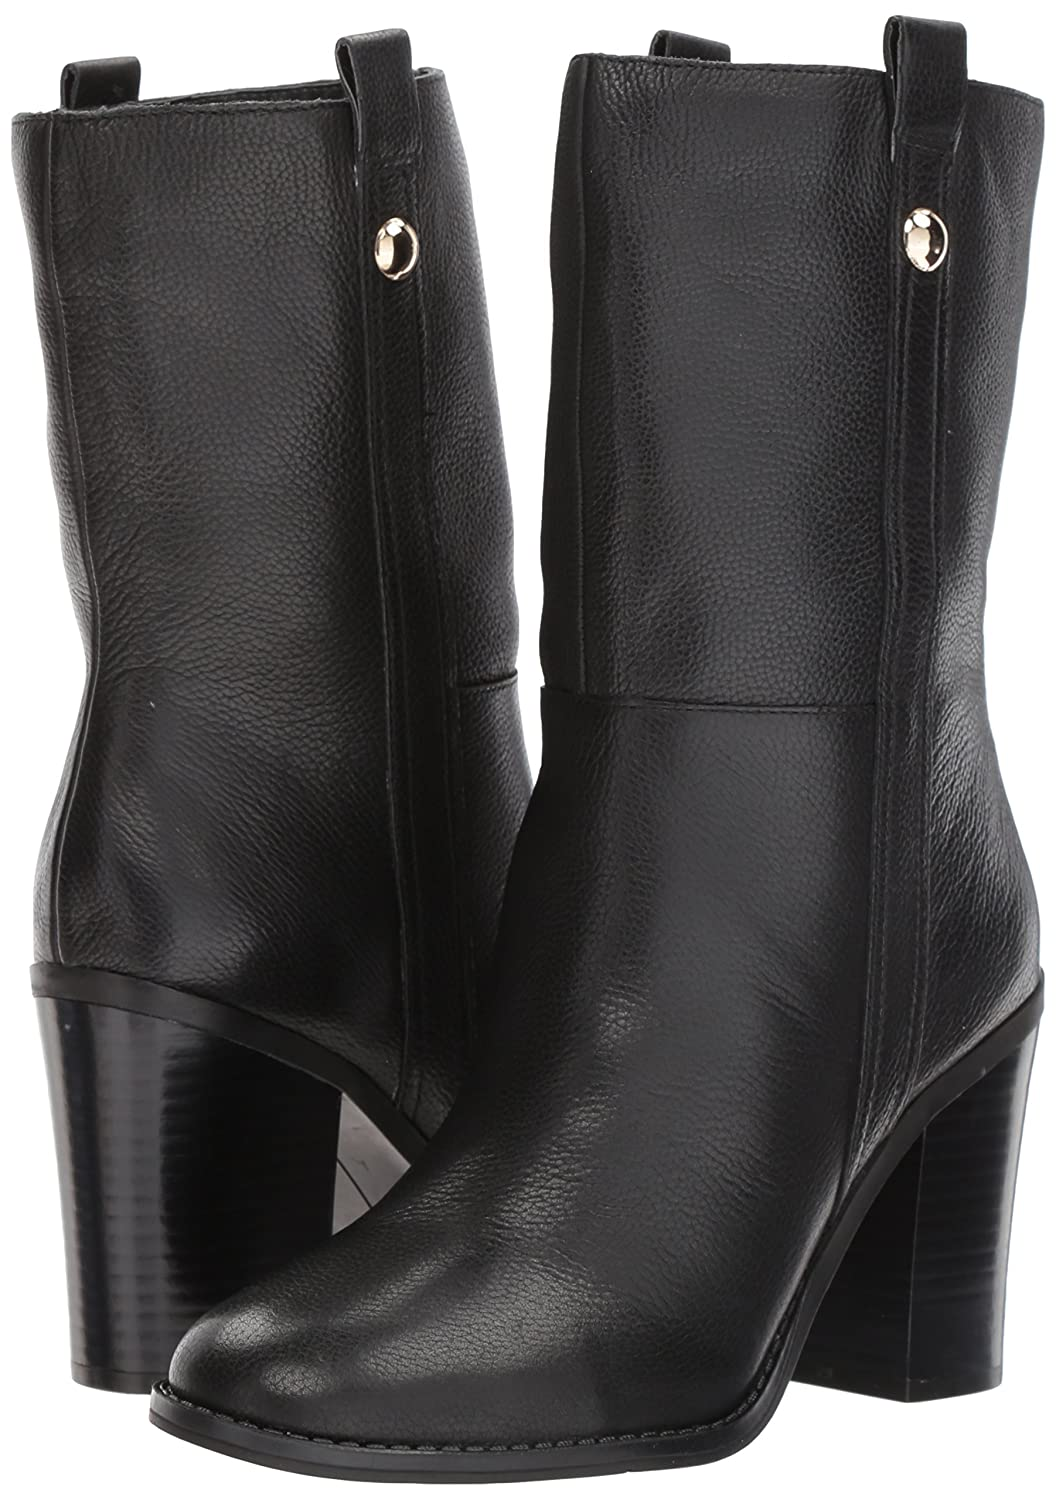 Nine West Women's Howl Leather Mid Calf Boot B071HRB7C6 8.5 B(M) US Black Leather